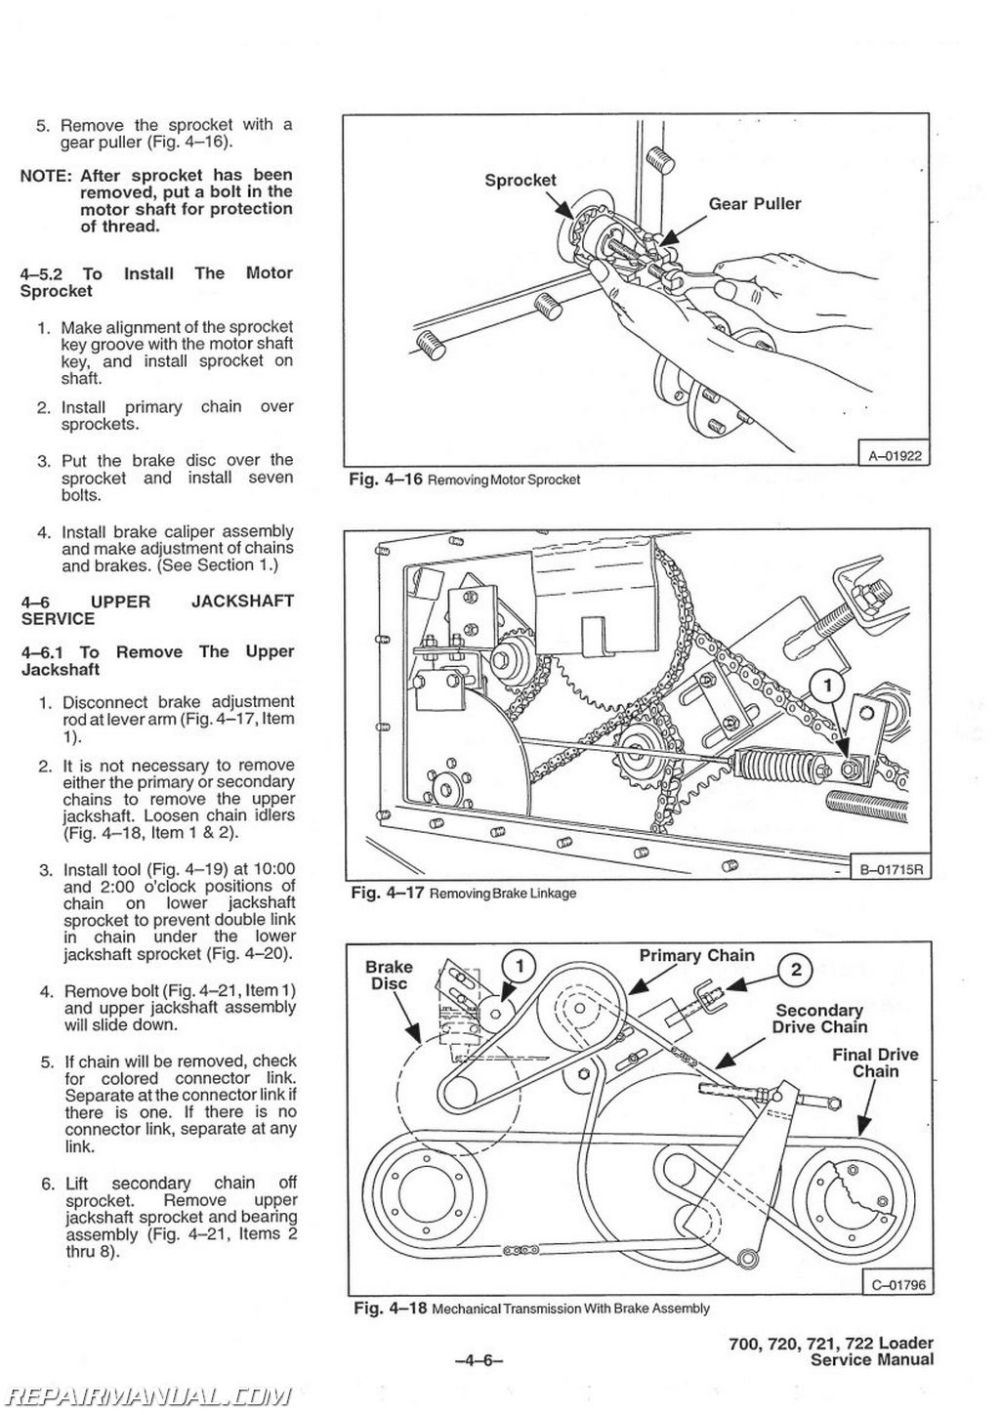 medium resolution of bobcat skid steer ignition switch wiring illustration of wiring bobcat 743 ignition switch wiring diagram